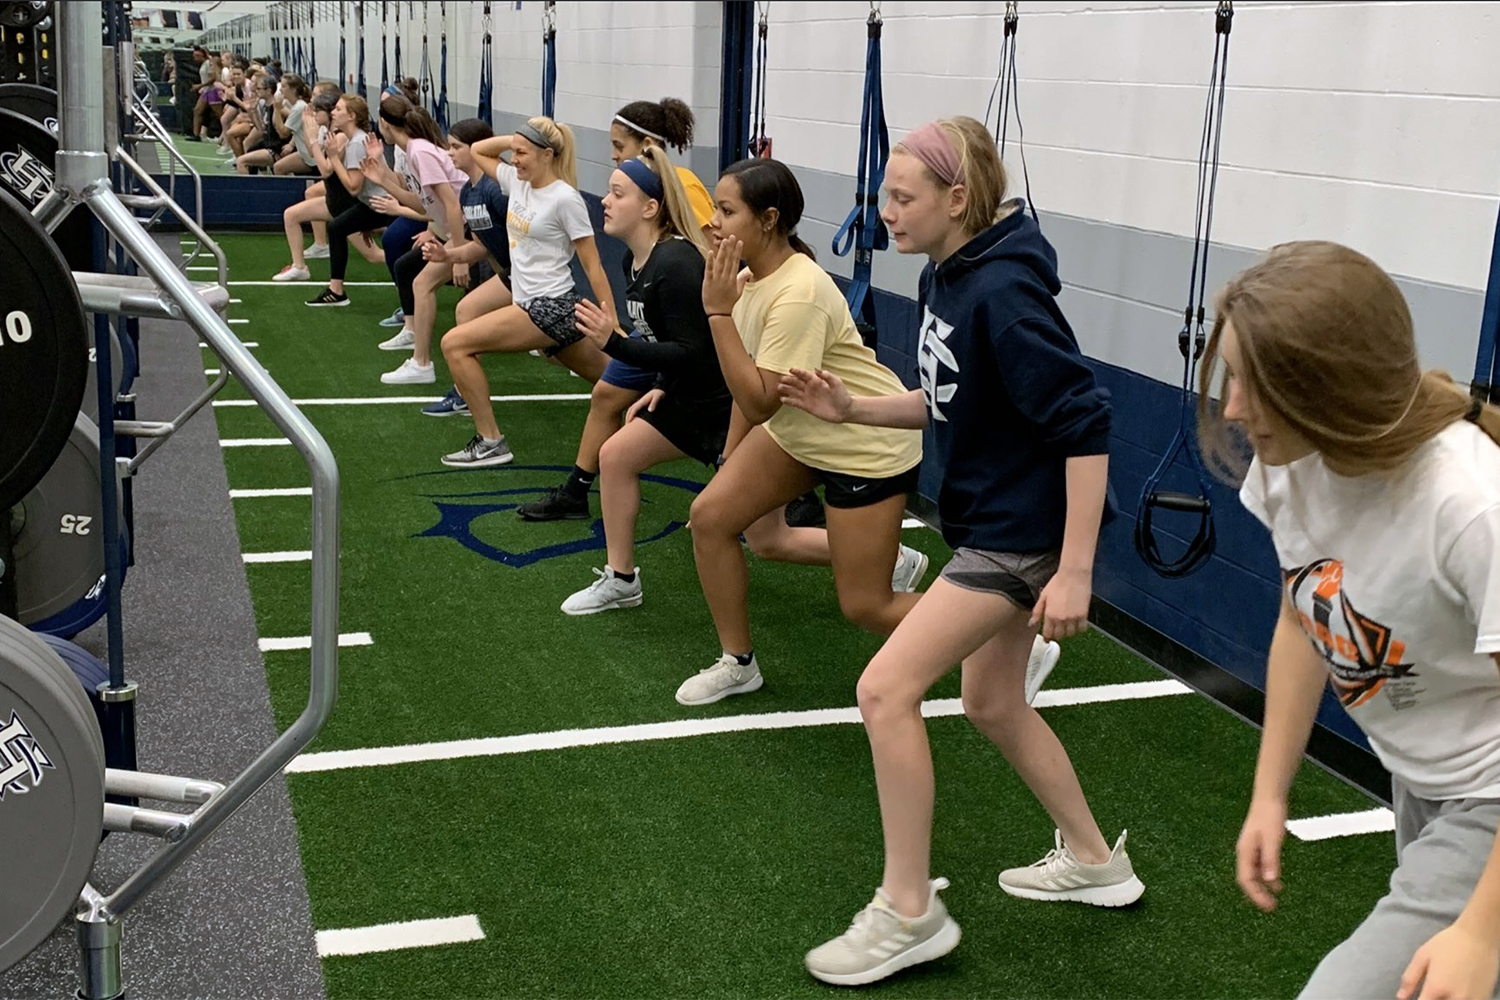 Members of the girls basketball program work out in the new workout facility during an early morning workout. The team was forced to move workouts while the center was being created but didn't see a decline in attendance, despite cramped conditions in the temporary workout site.